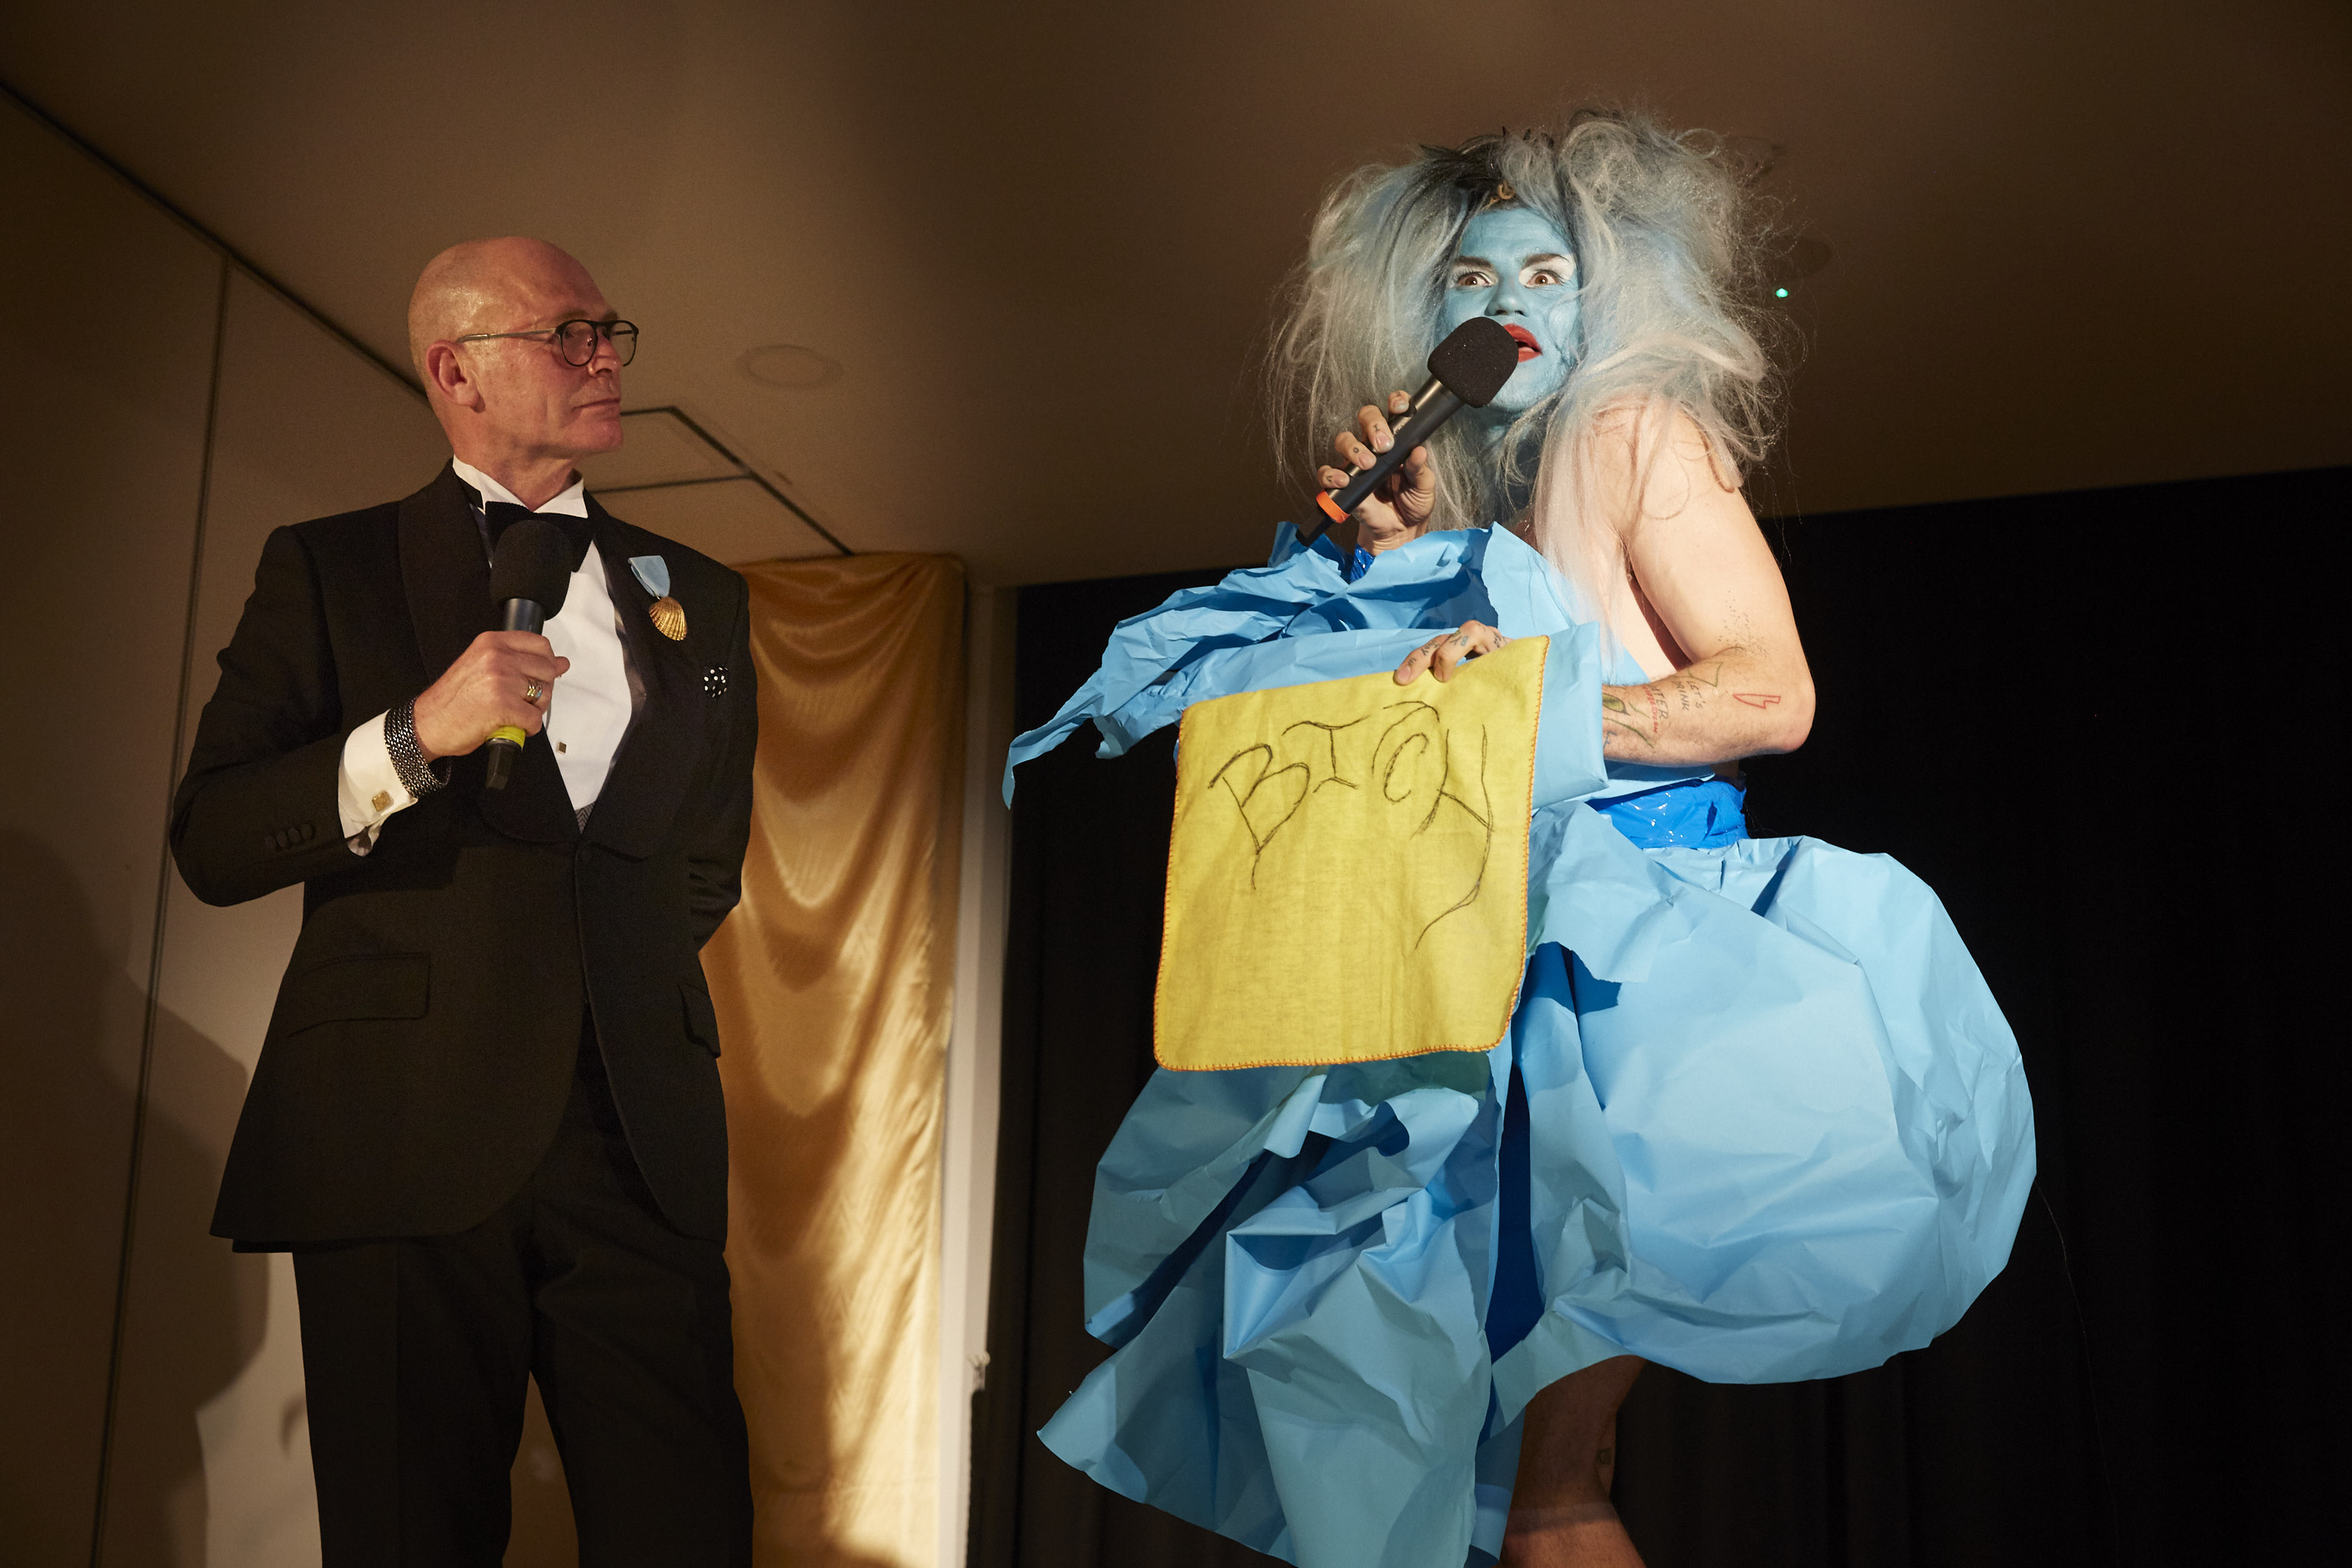 Drag performer with a blue face, wig and dress holds a yellow cloth with the word 'bitch' embroidered in it. An auctioneer in a tuxedo watches.